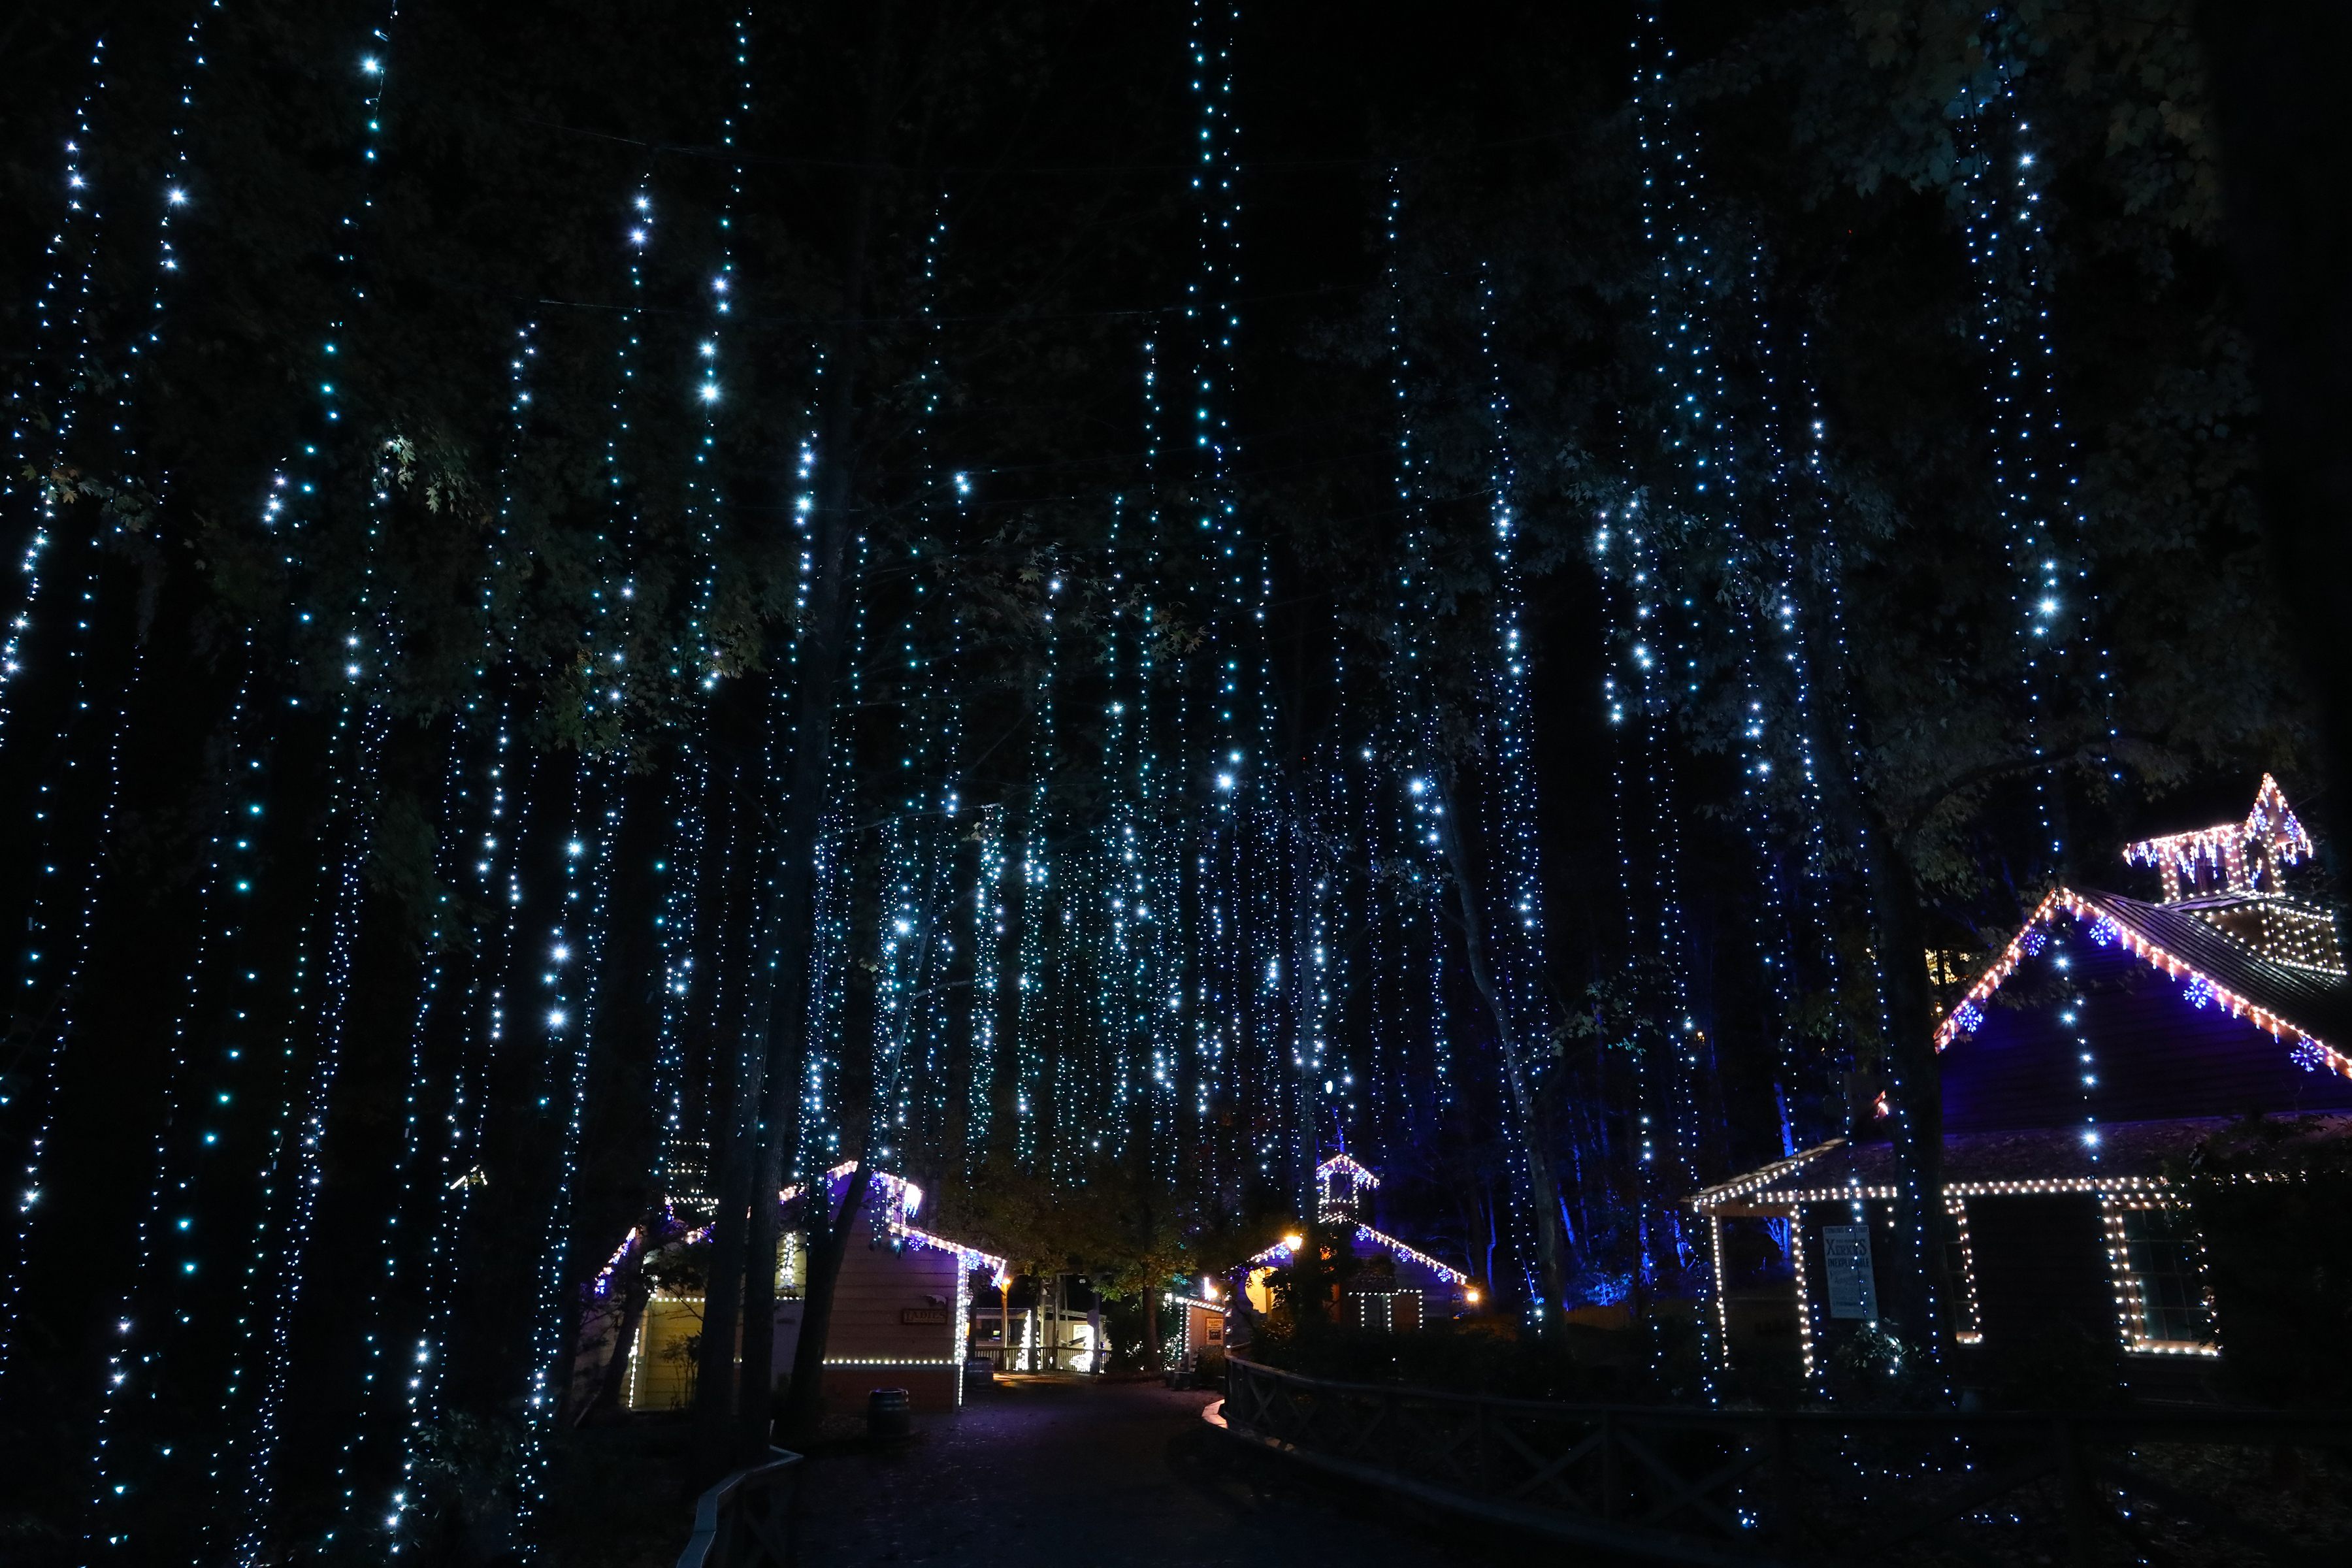 Dollywood Christmas Lights 2021 Dollywood S Smoky Mountain Christmas Wraps Families In The Light Of The Season Business Wire